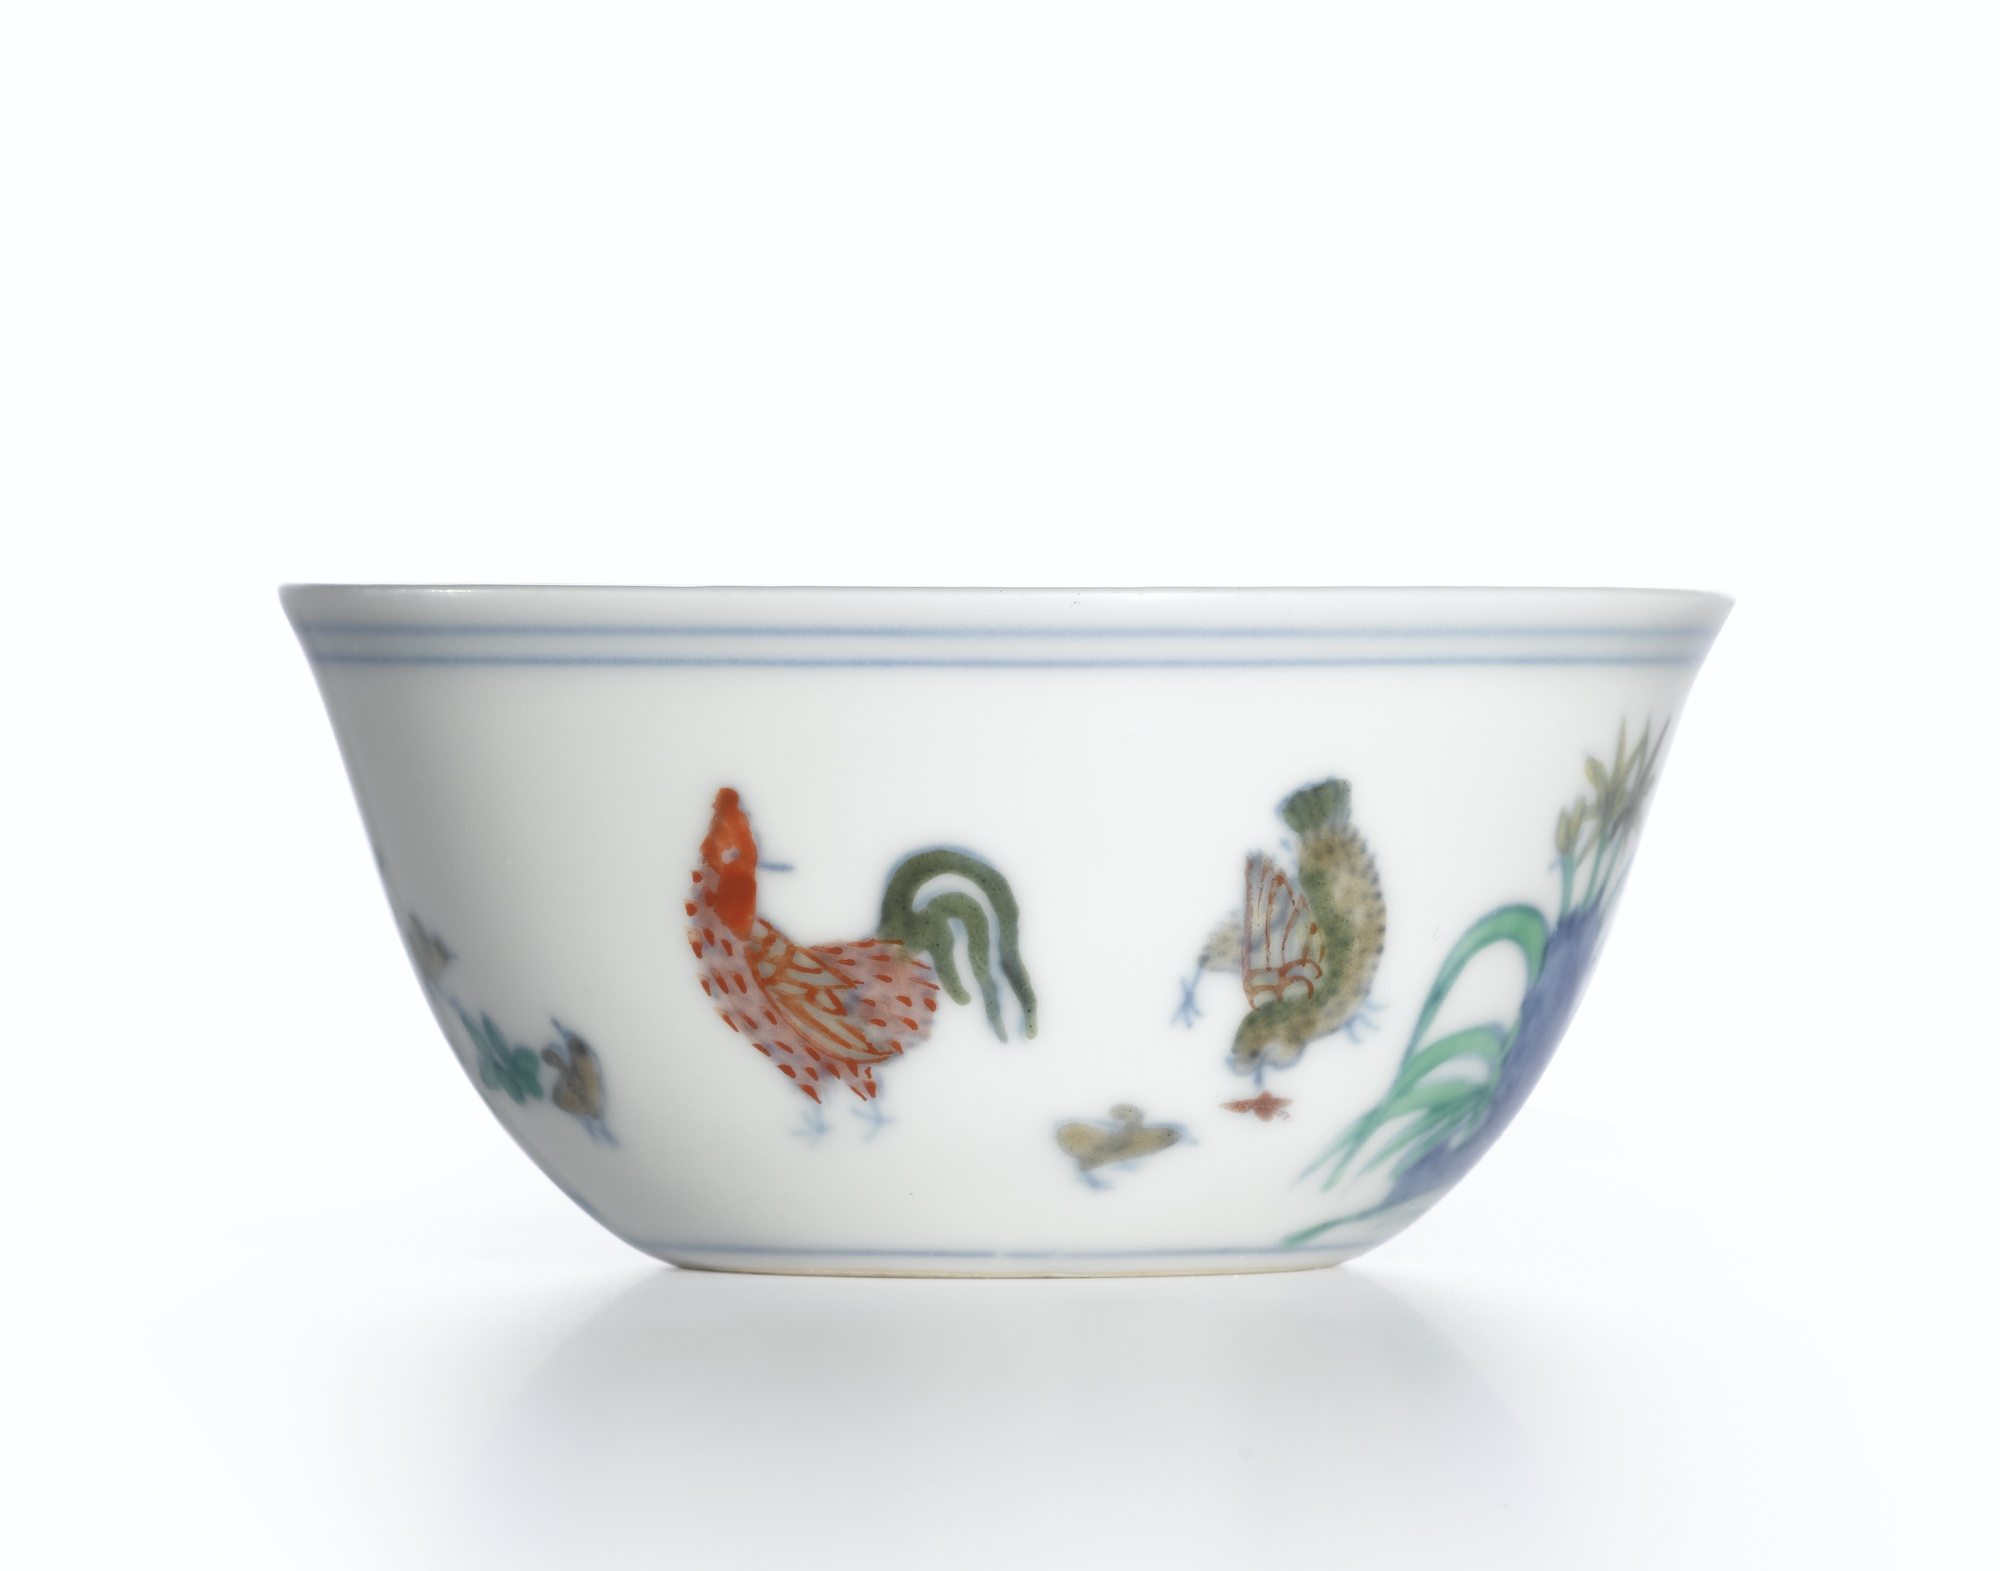 The Meiyintang 'Chicken Cup', the holy grail of Chinese porcelain. The designs were first drawn in cobalt blue on the unfired vessel. After glazing and high-temp firing, they were filled in with overglaze enamel pigments and then fired again at a lower temperature to bring out the vibrant colors.